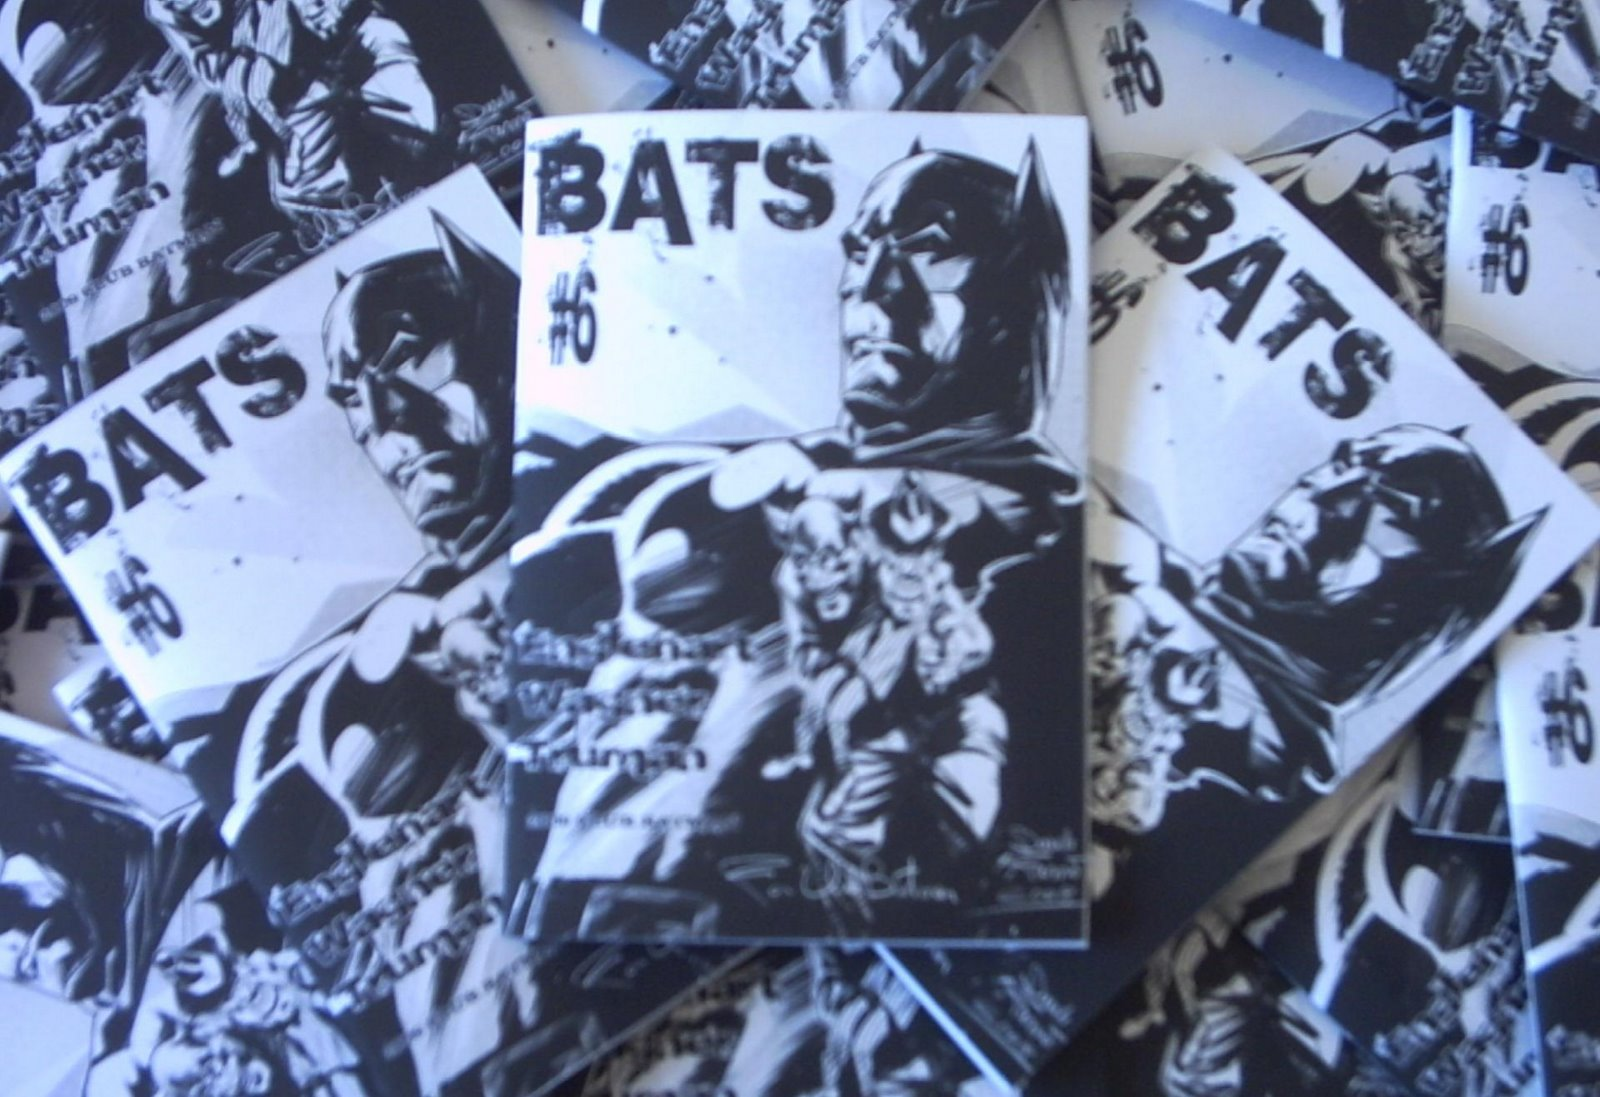 [bats-6.club-batman.blogspot.JPG]